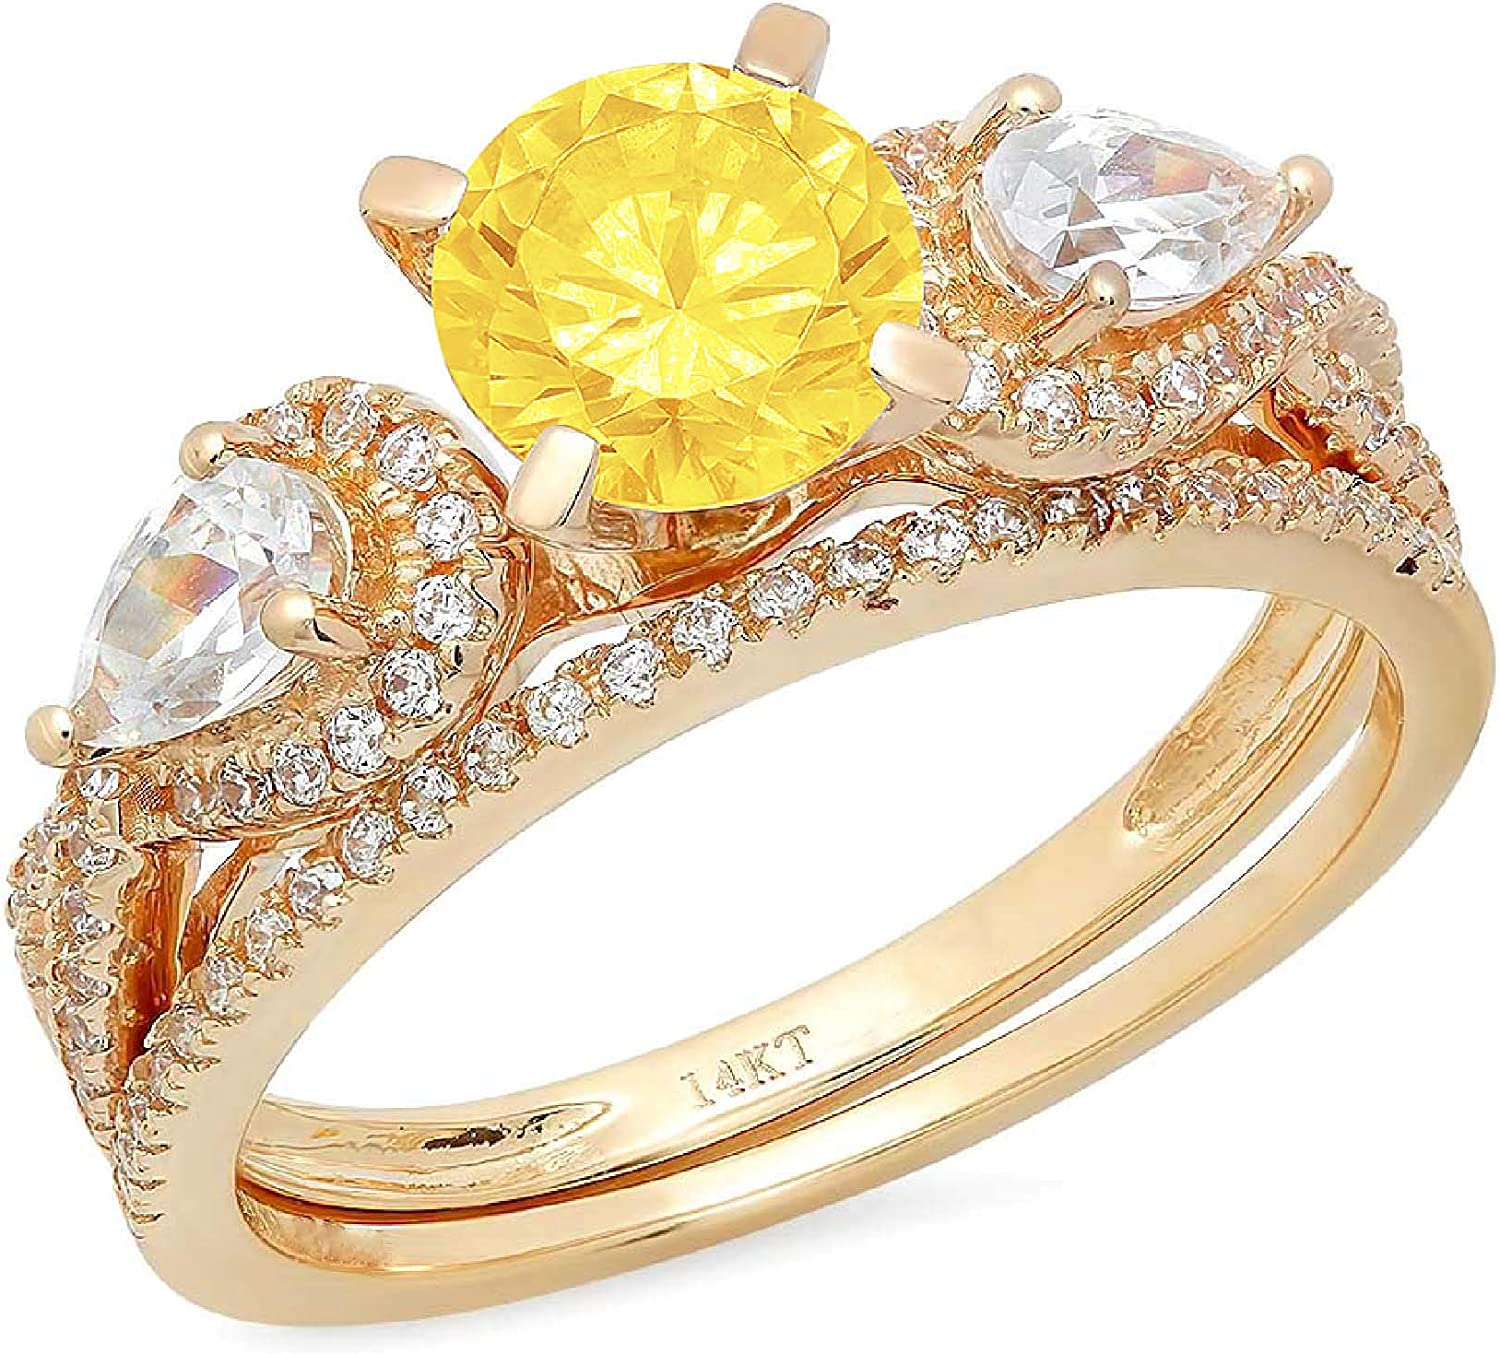 1.94ct Round Pear Cut Solitaire 3 stone With Accent VVS1 Ideal Canary Yellow Simulated Diamond CZ Engagement Promise Designer Anniversary Wedding Bridal ring band set 14k Yellow Gold